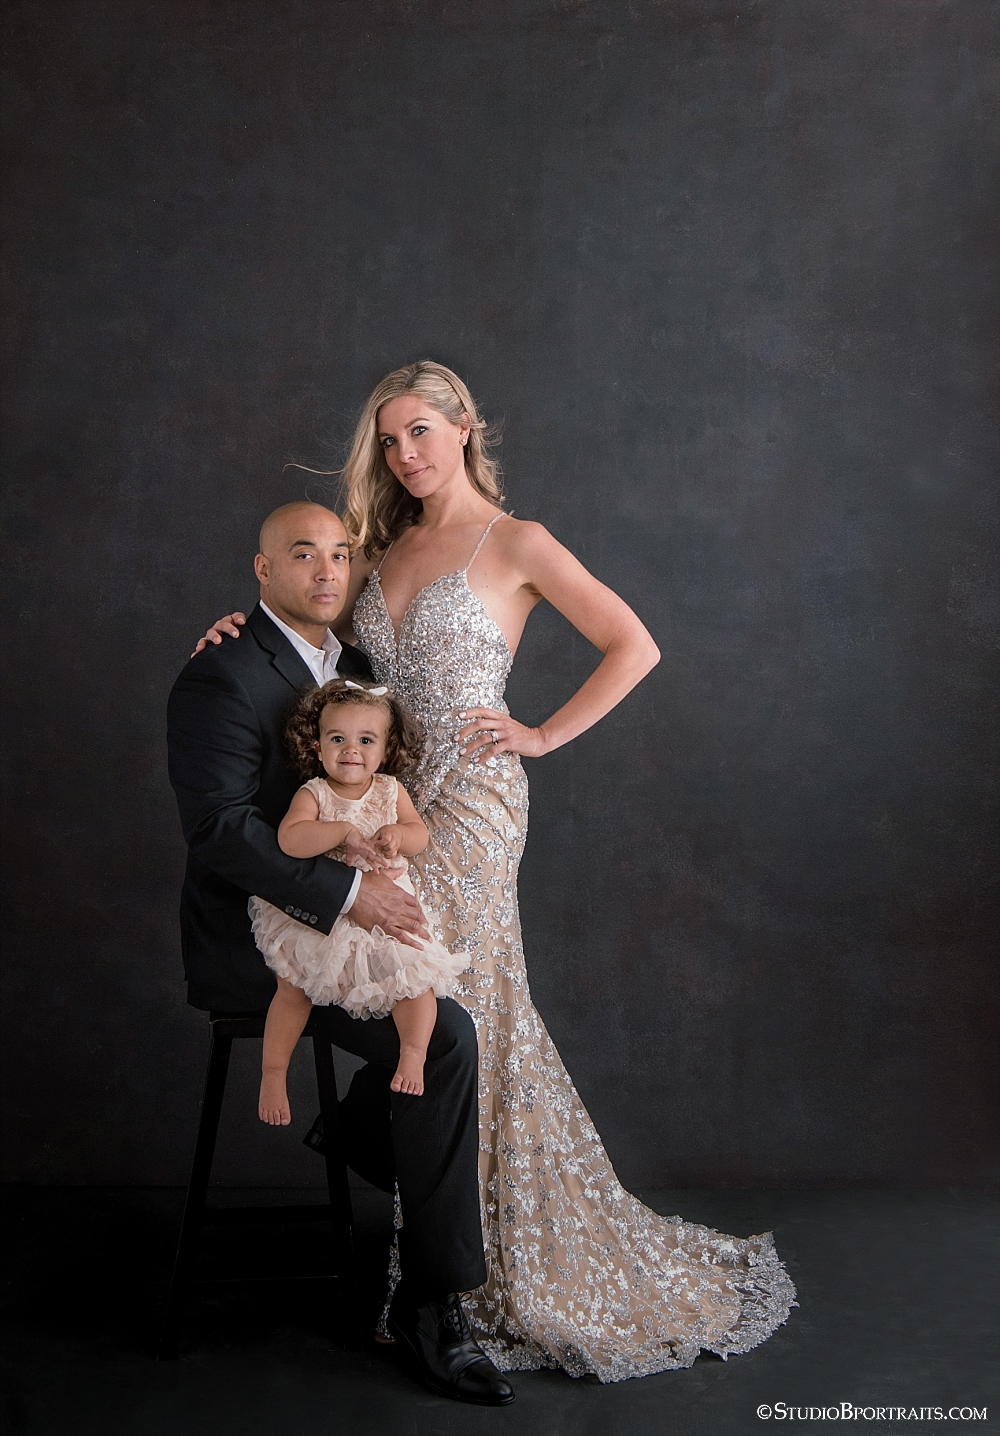 Fierce with a little bit of baby fabulous has never looked so beautiful. Mom's gown courtesy of  Samila Boutique  in Redmond. Make-up, Tiffany Penton and Hair: Wesley Kelly